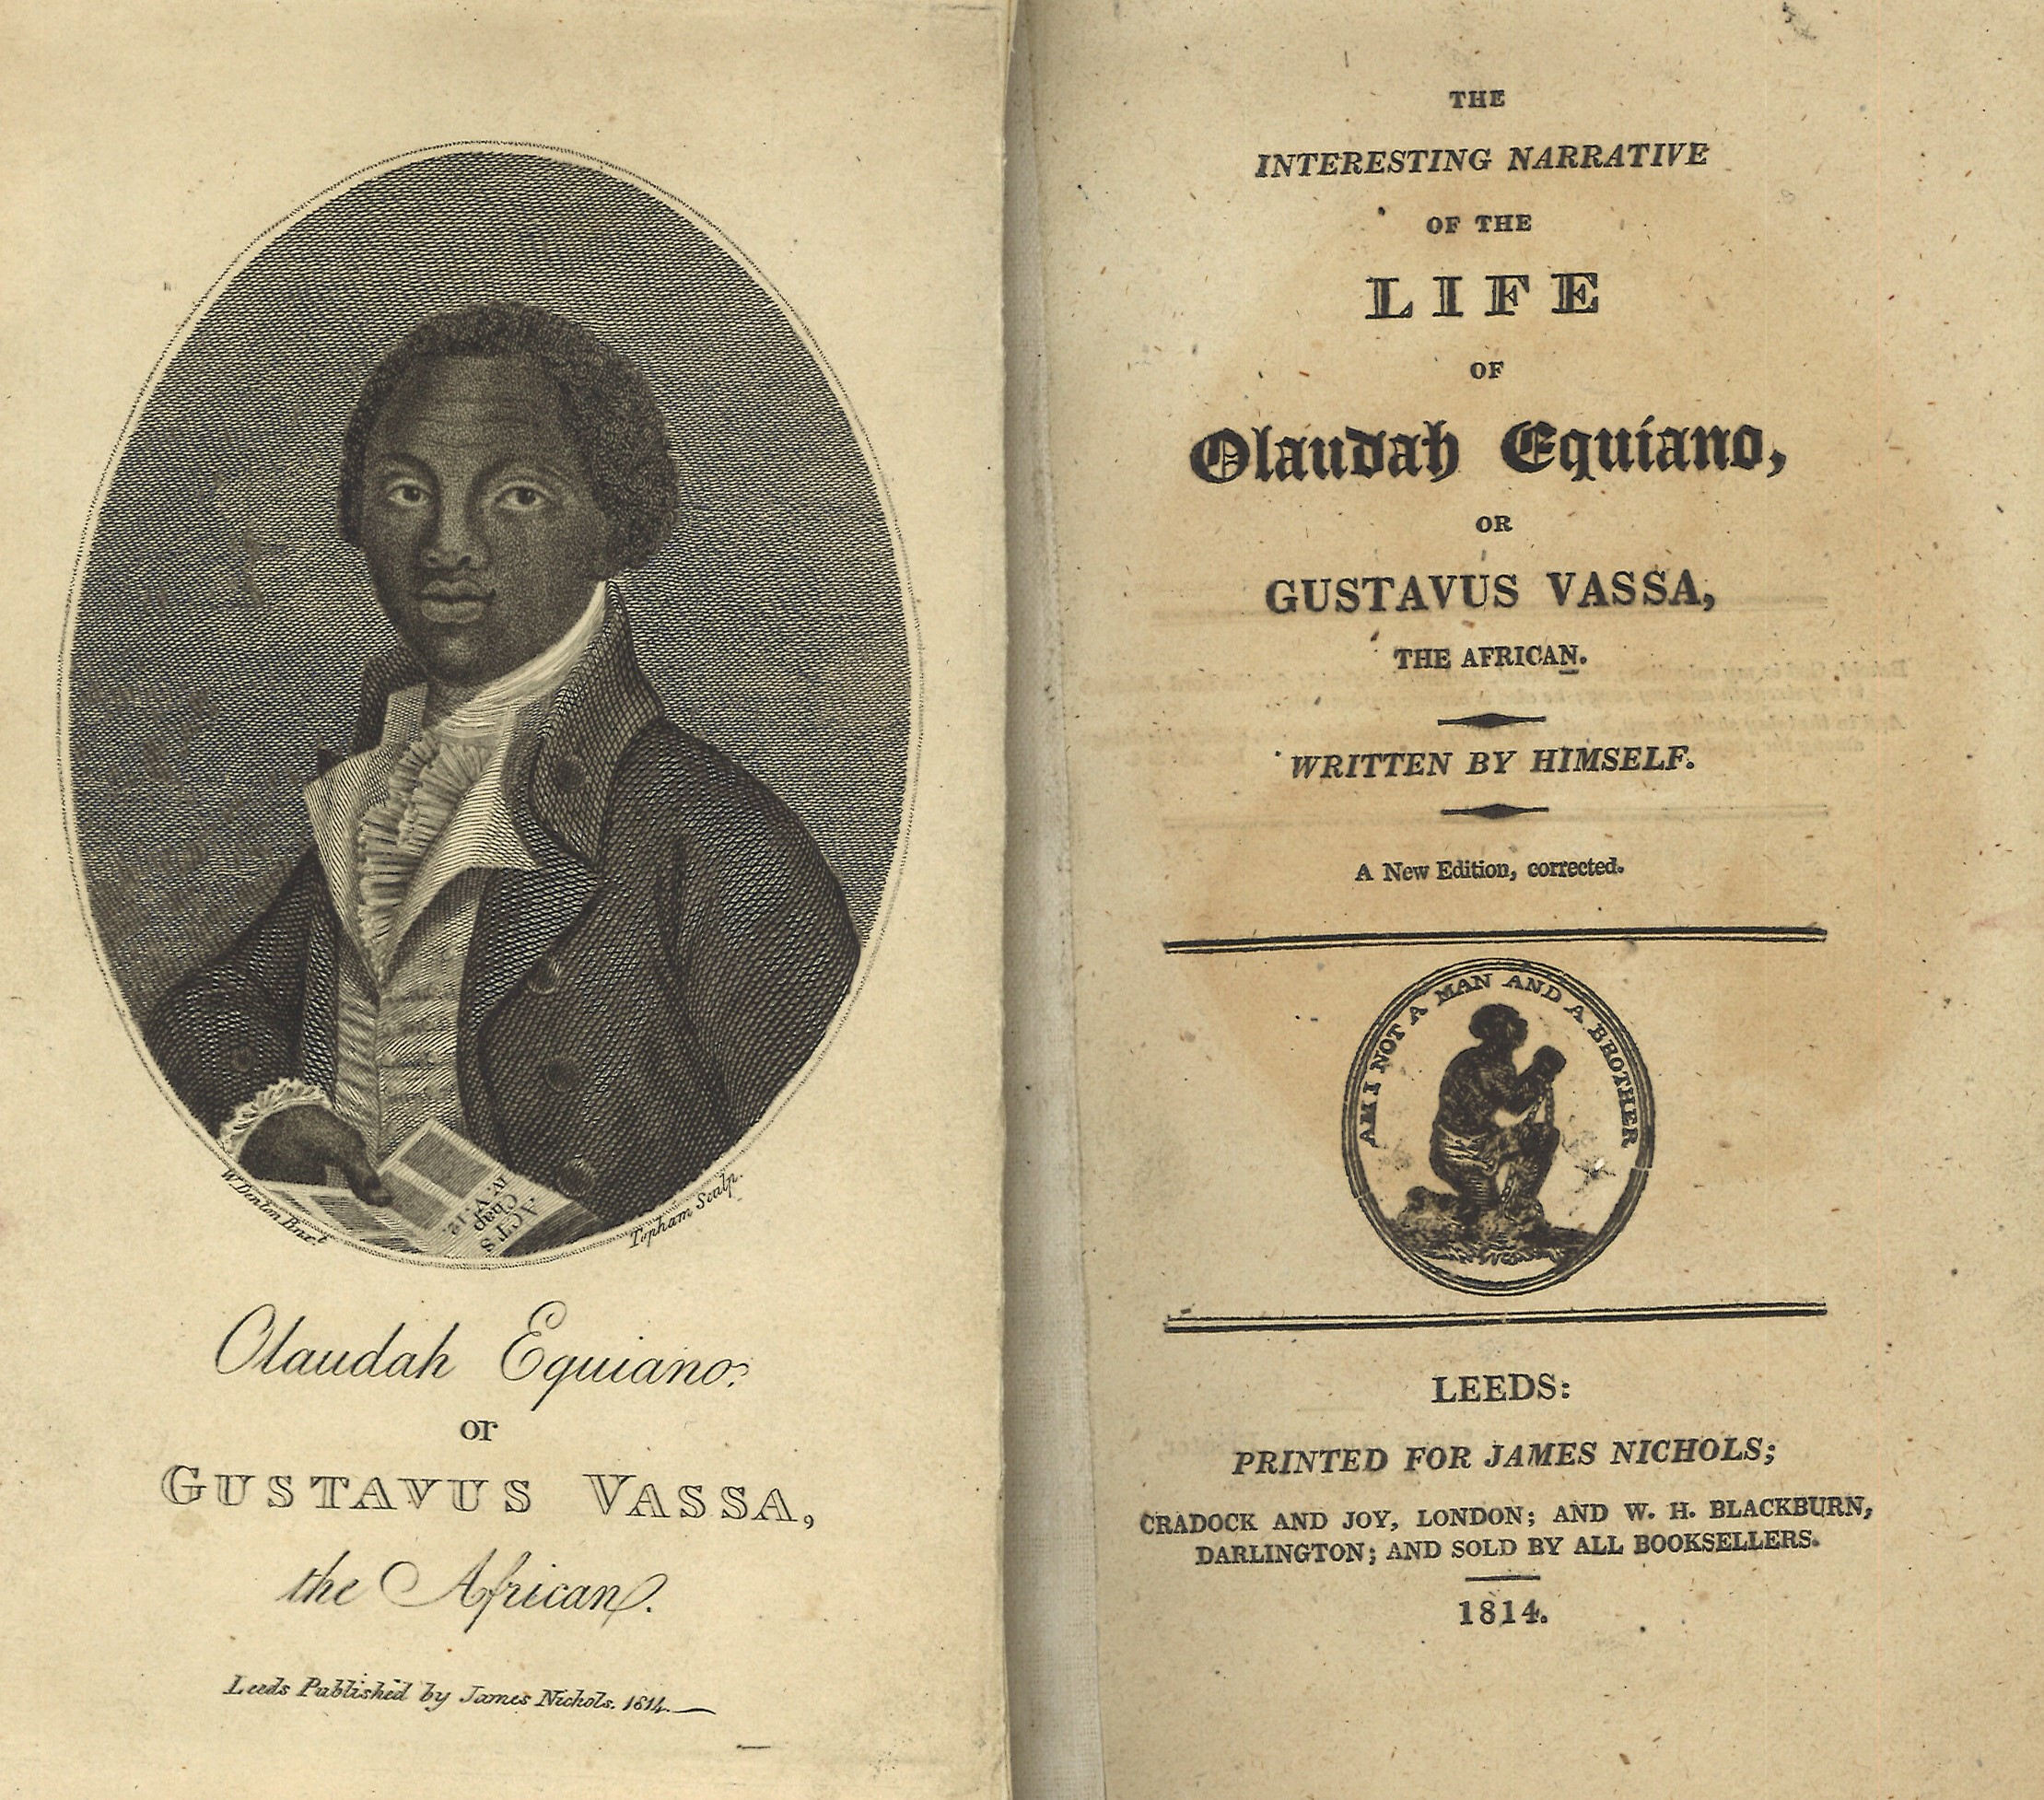 pages from The Life of Olaudah Equiano published in 1789